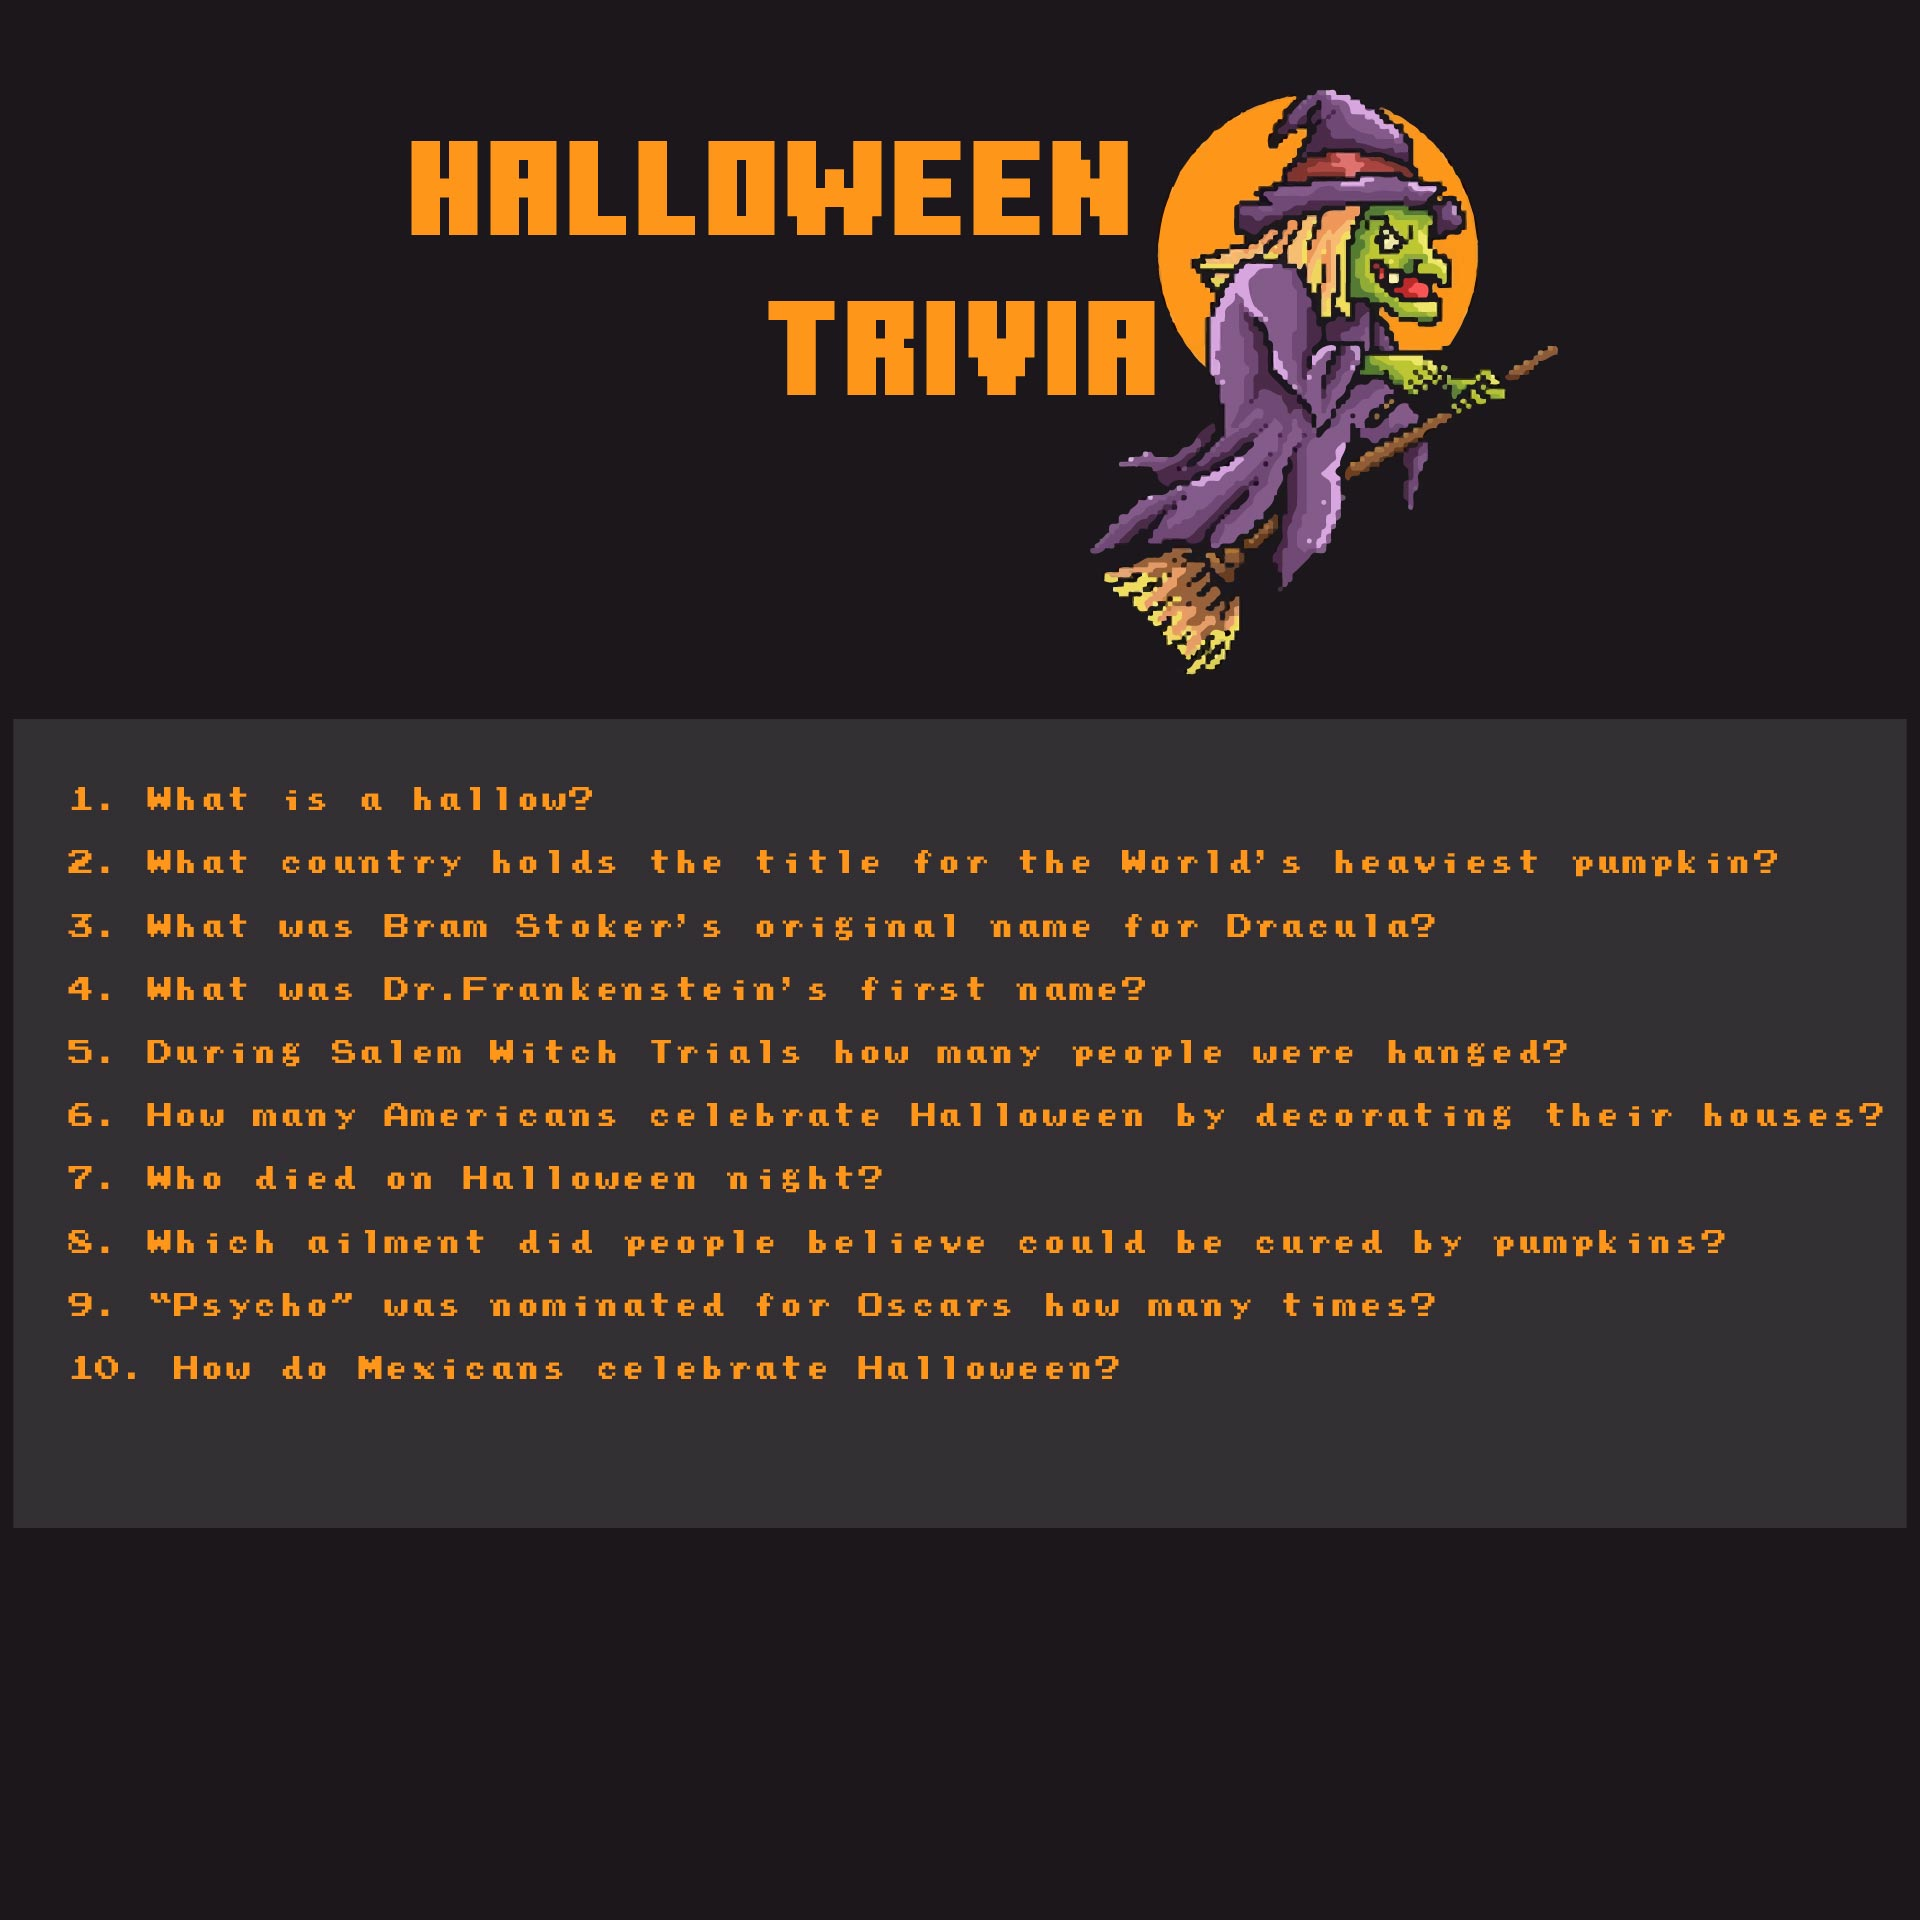 Halloween Trivia Questions Halloween Trivia Quiz Halloween Trivia Quiz 7 Best Images of Free Printable Halloween